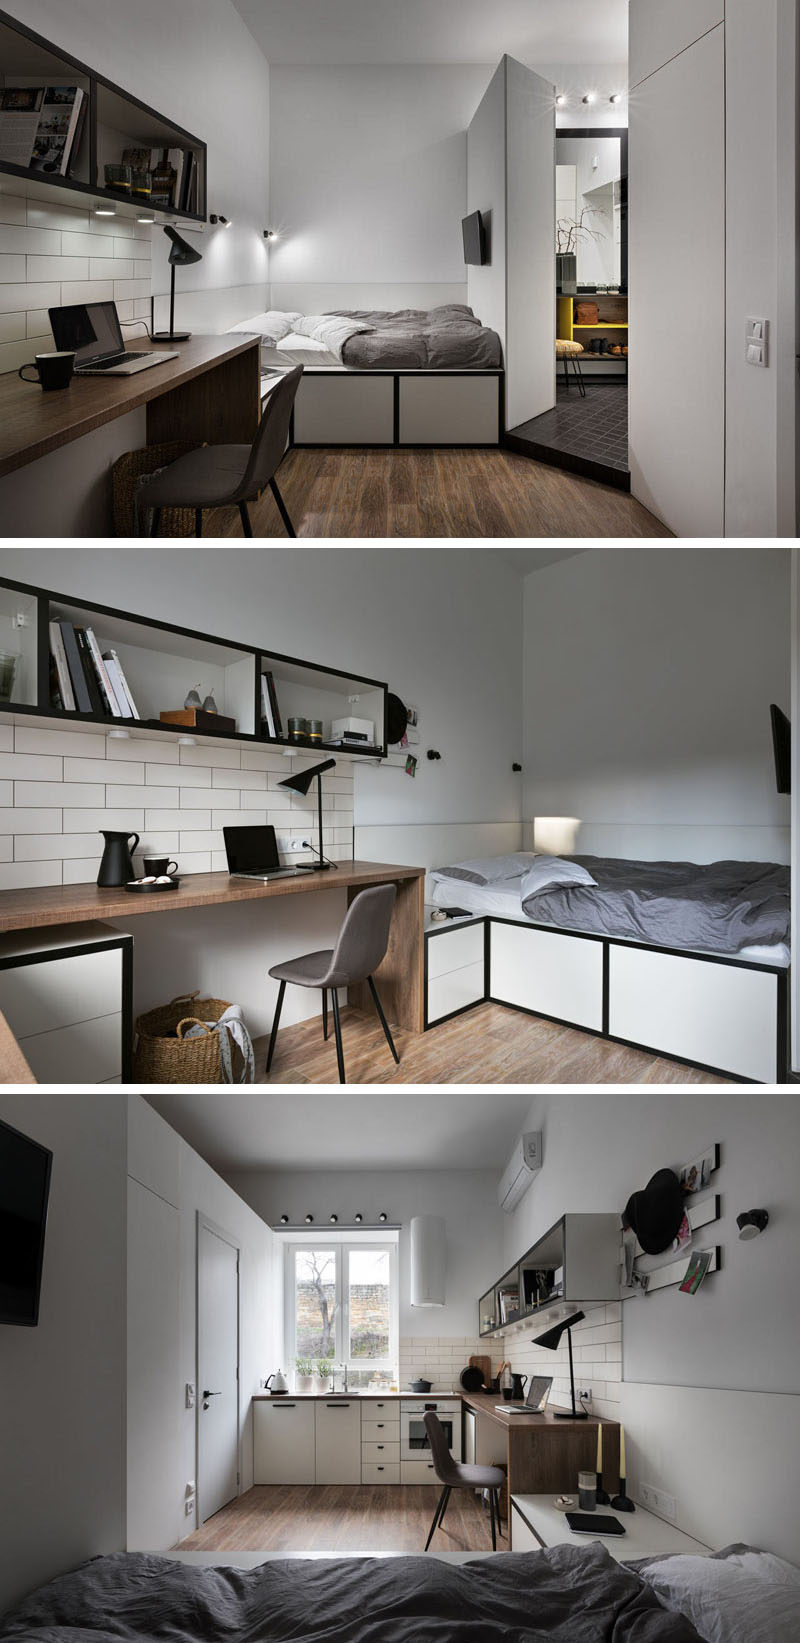 The bed of this tiny apartment has been slightly raised to provide storage beneath it, while a wall-mounted television allows the bed to be also used as a place to watch TV. #SmallApartment #TinyLiving #ModernApartment